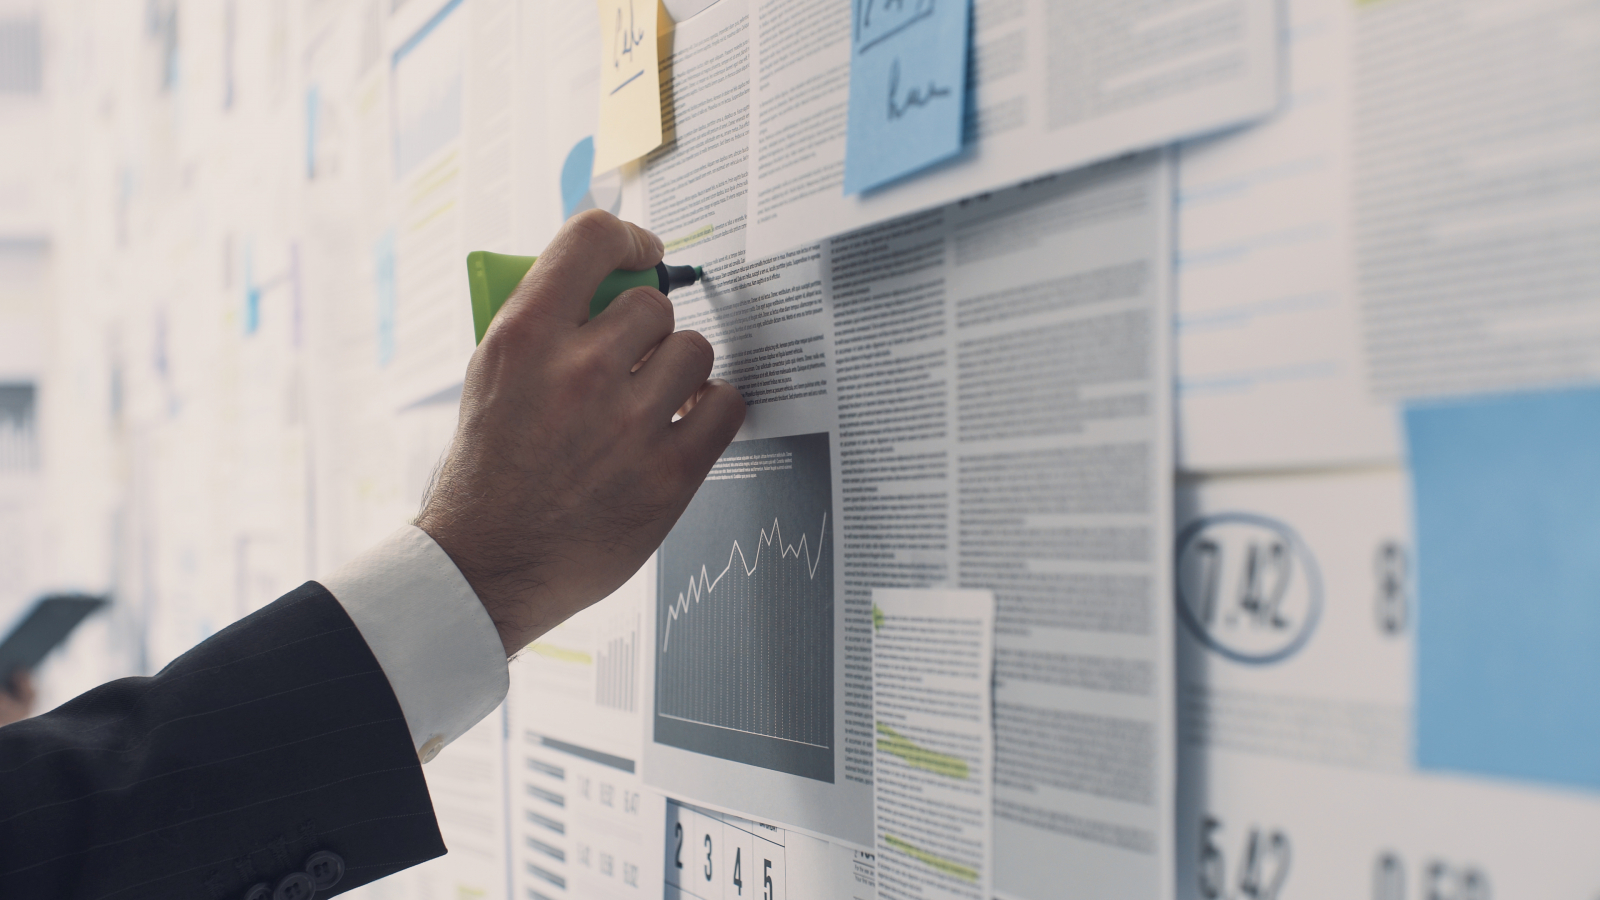 Businessman analyzing a wall with many financial charts and reports, he is underlining text with a marker